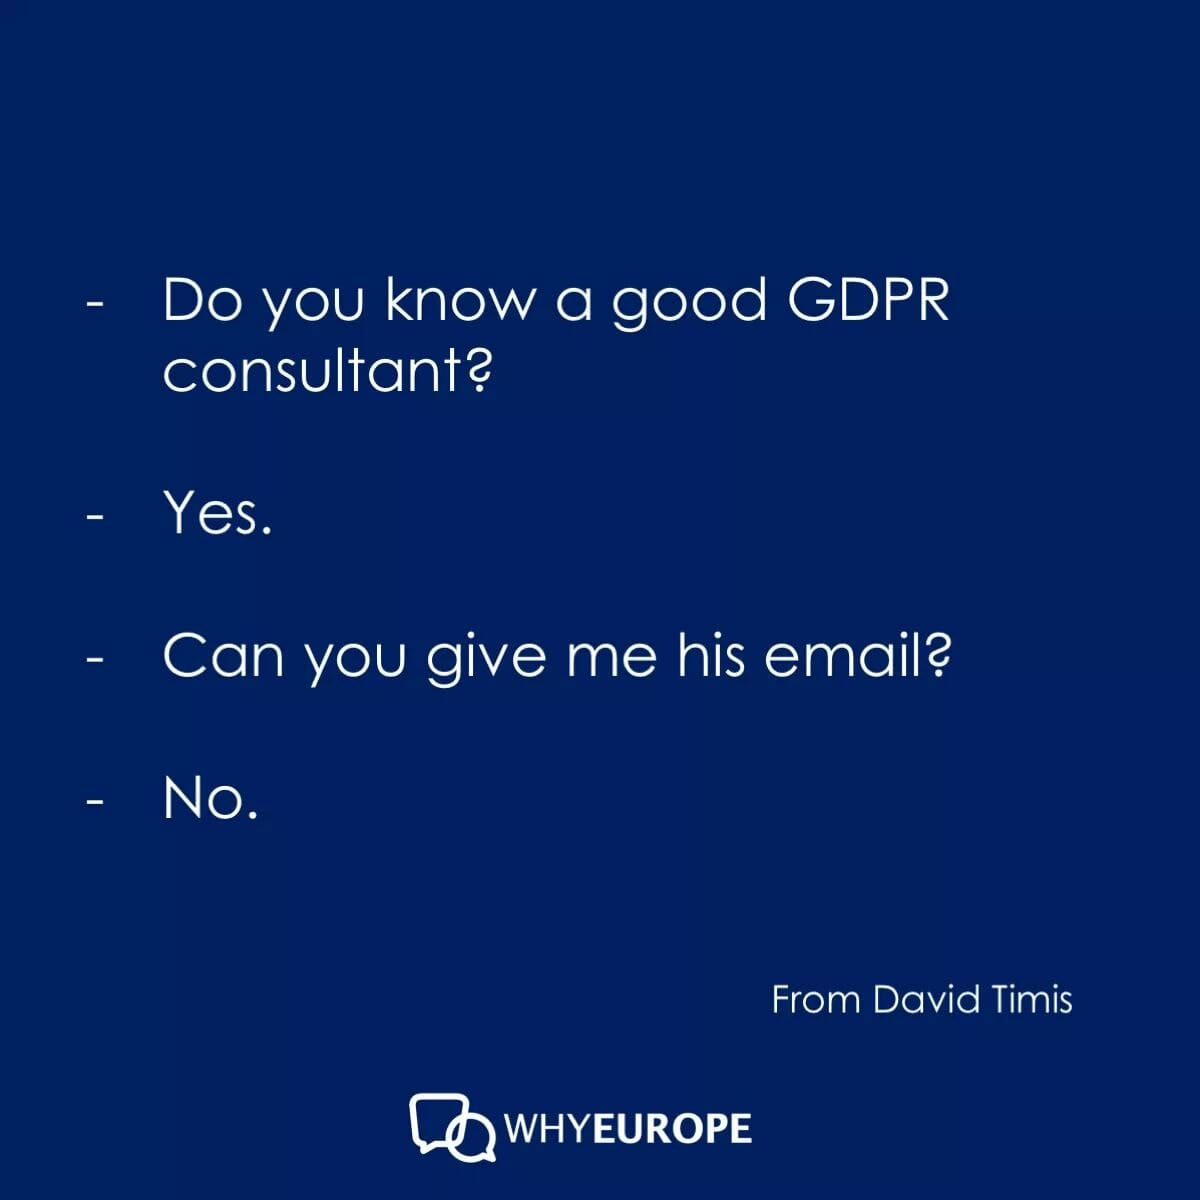 GDPR email sharing